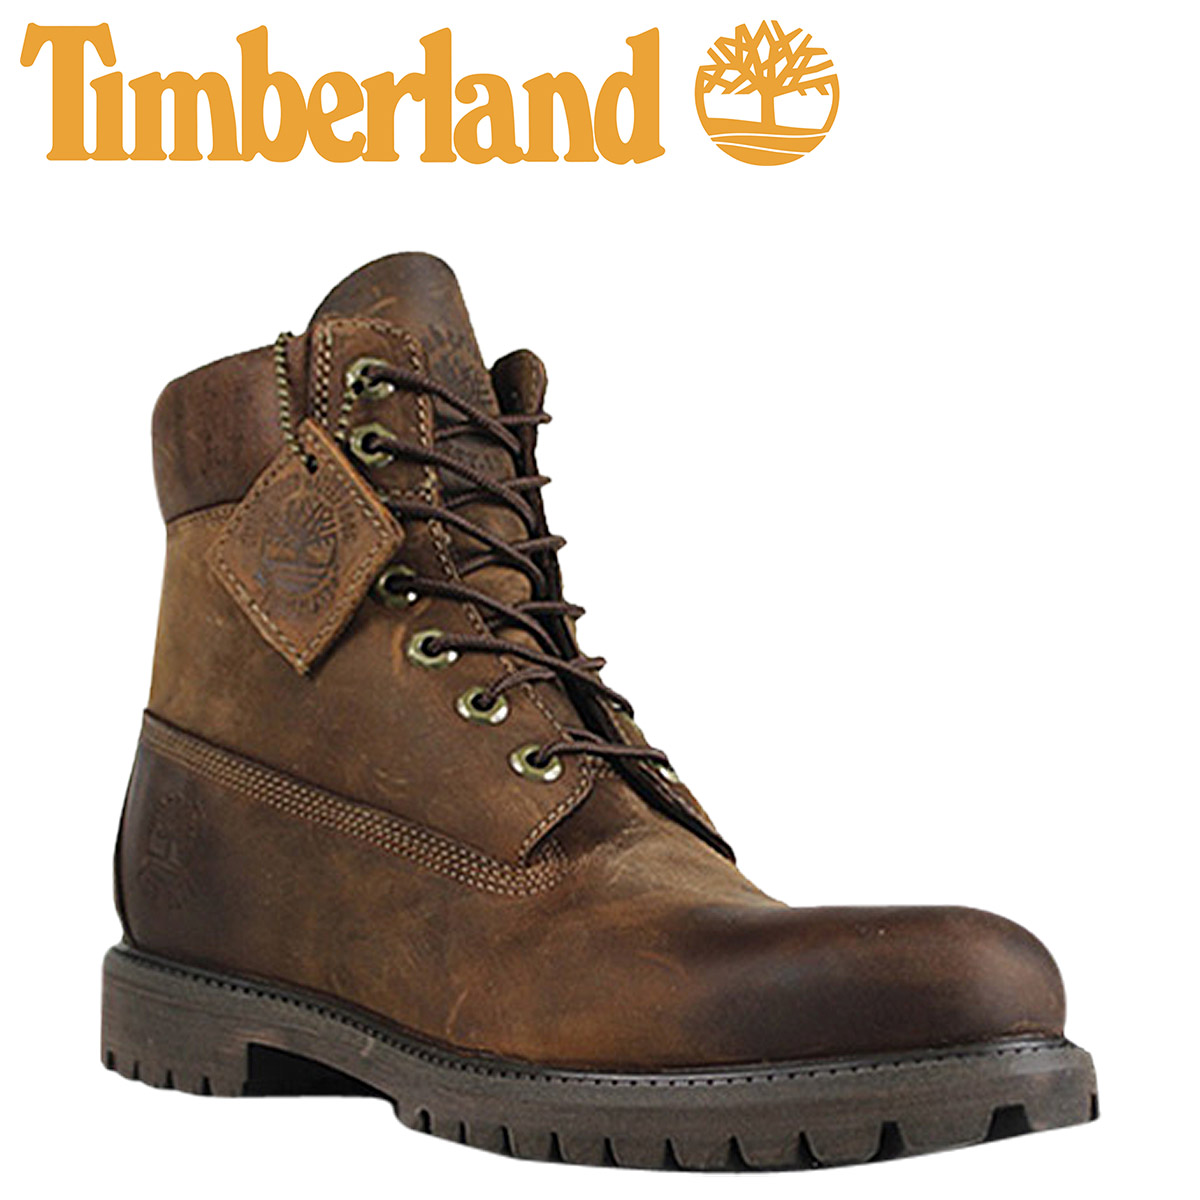 04b352933402 Heritage Classics- SOLD OUT  Timberland Timberland 6 inch premium  waterproof boots  Brown  6064 R 6inch Heritage Premium Classic Waterproof  Boot leather ...